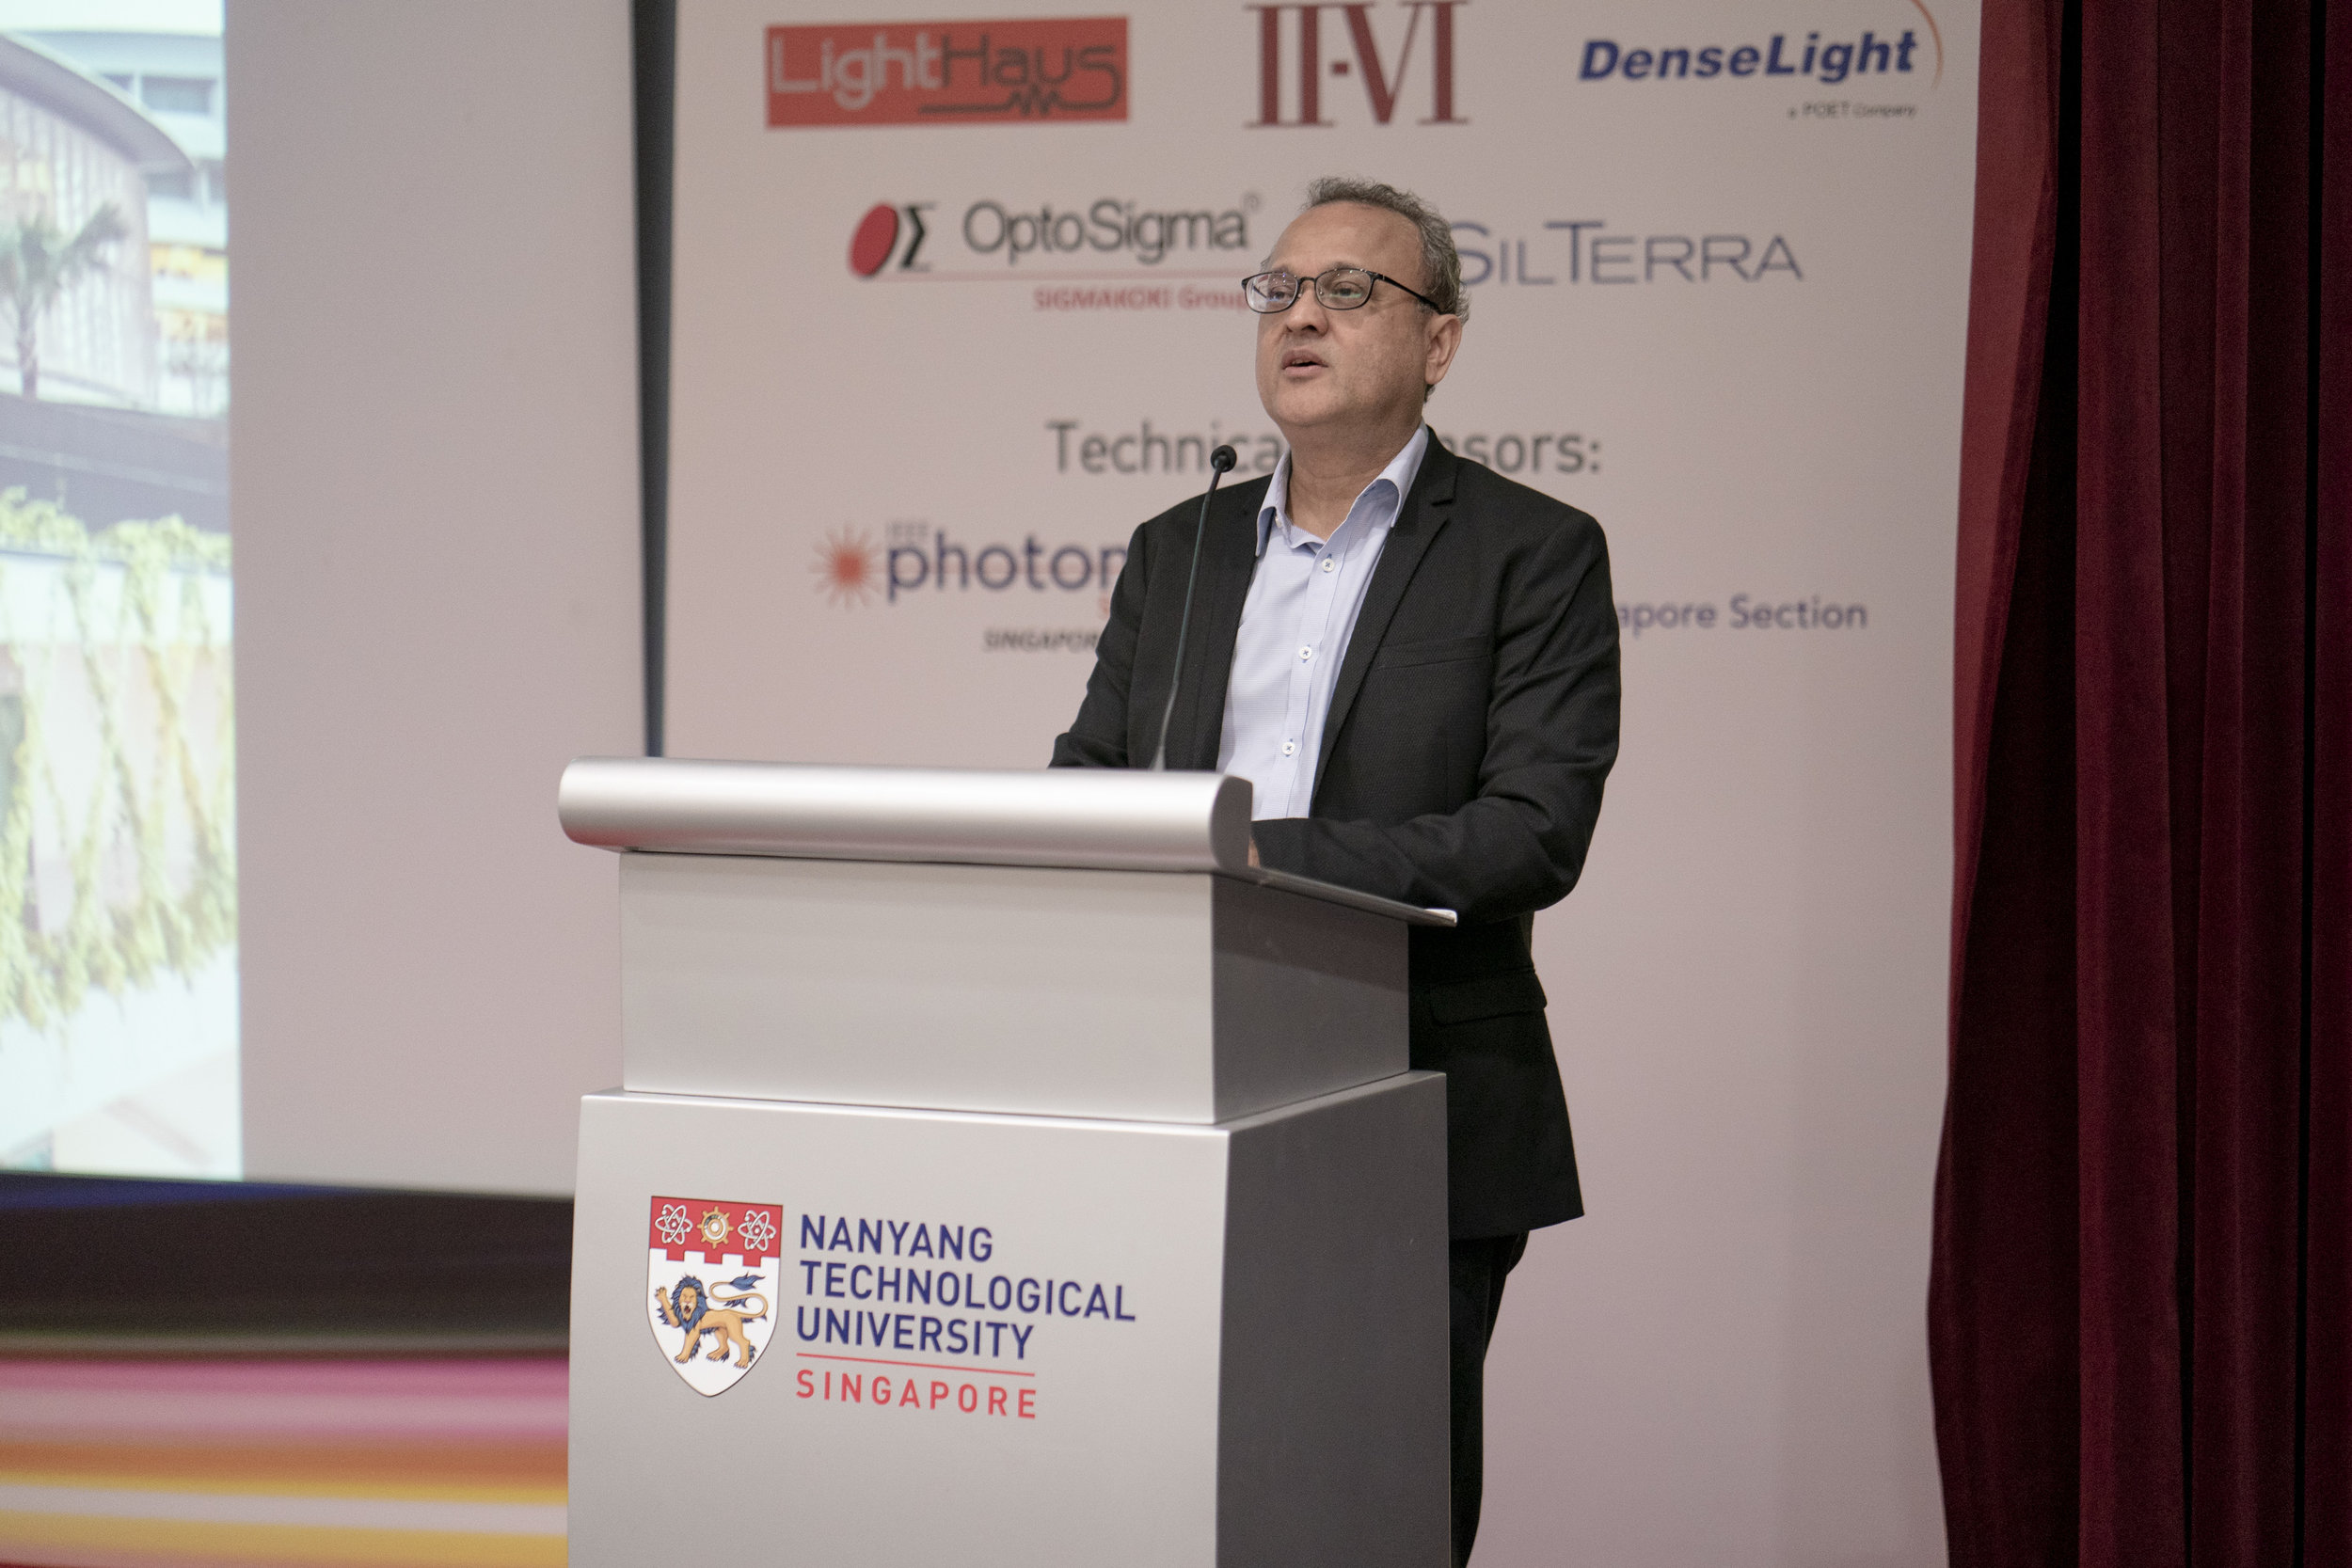 TPI Photonics SG 2018 Conference n Exhibition 0154rc.jpg